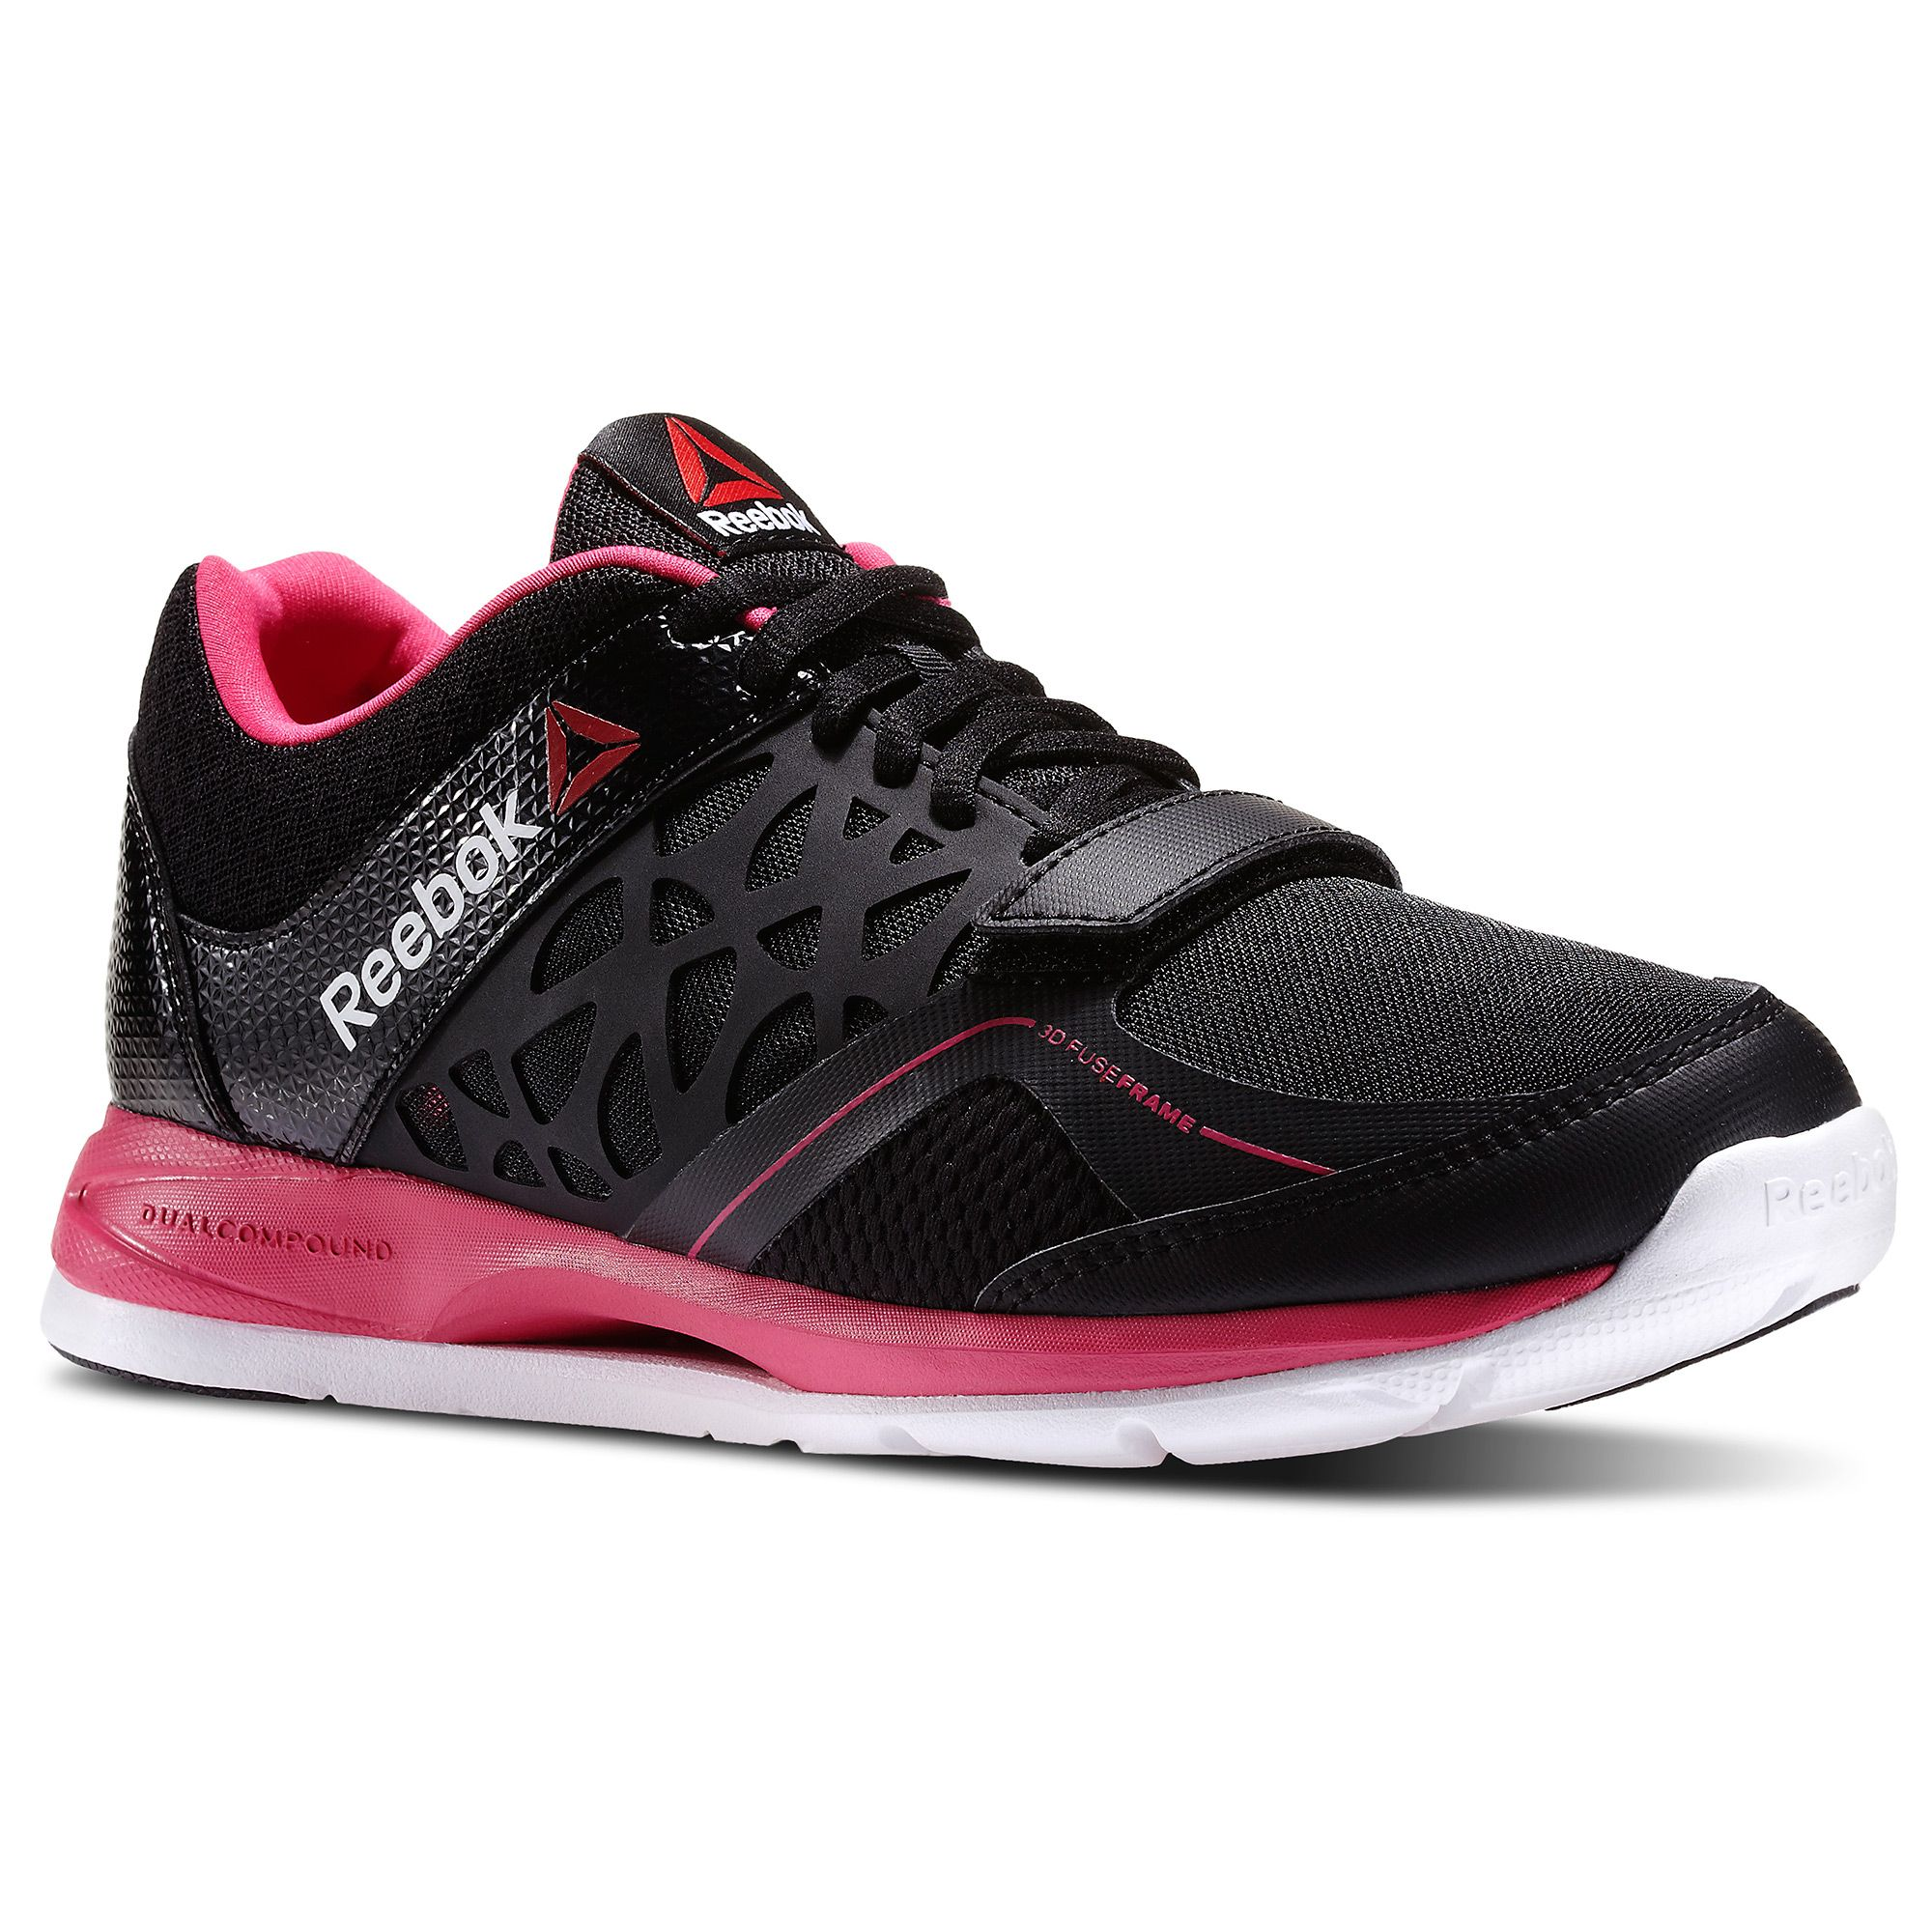 Buy women's sports shoes online and up your game Get your feet the best pair of ladies' sports shoes and perk up for the best games you would play. Being a woman, it is essential that you take good care of your body fitness.